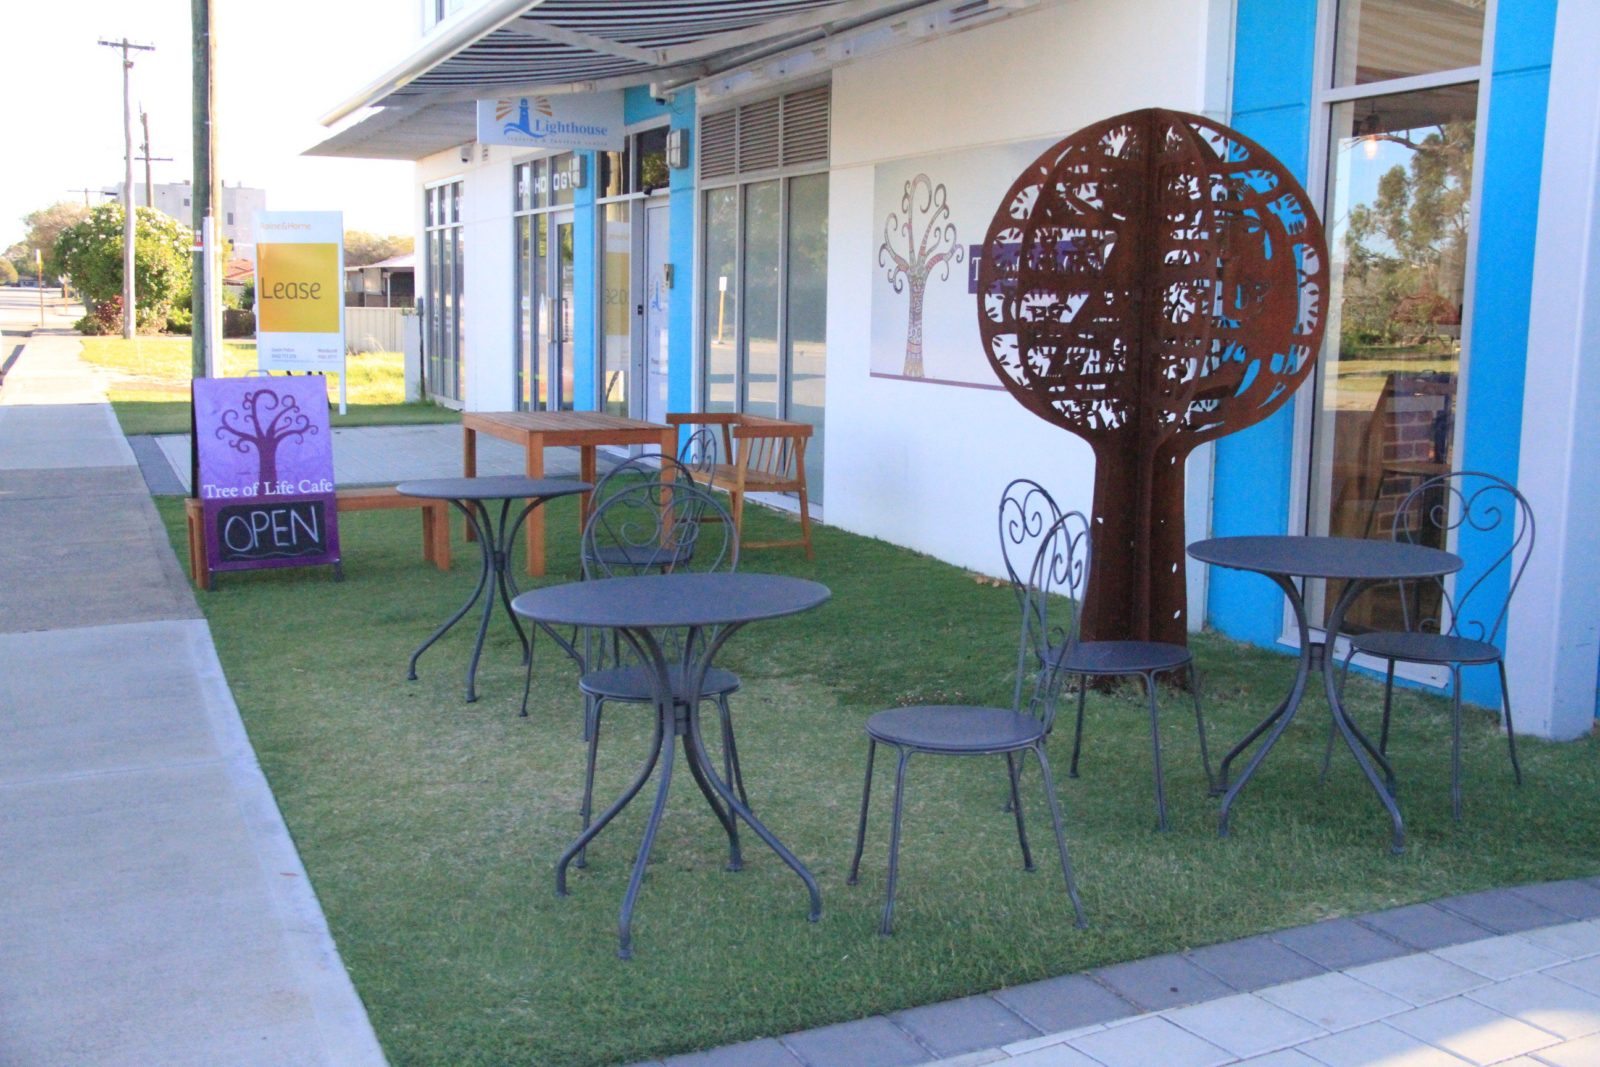 Tree of Life Cafe, Mandurah, Western Australia